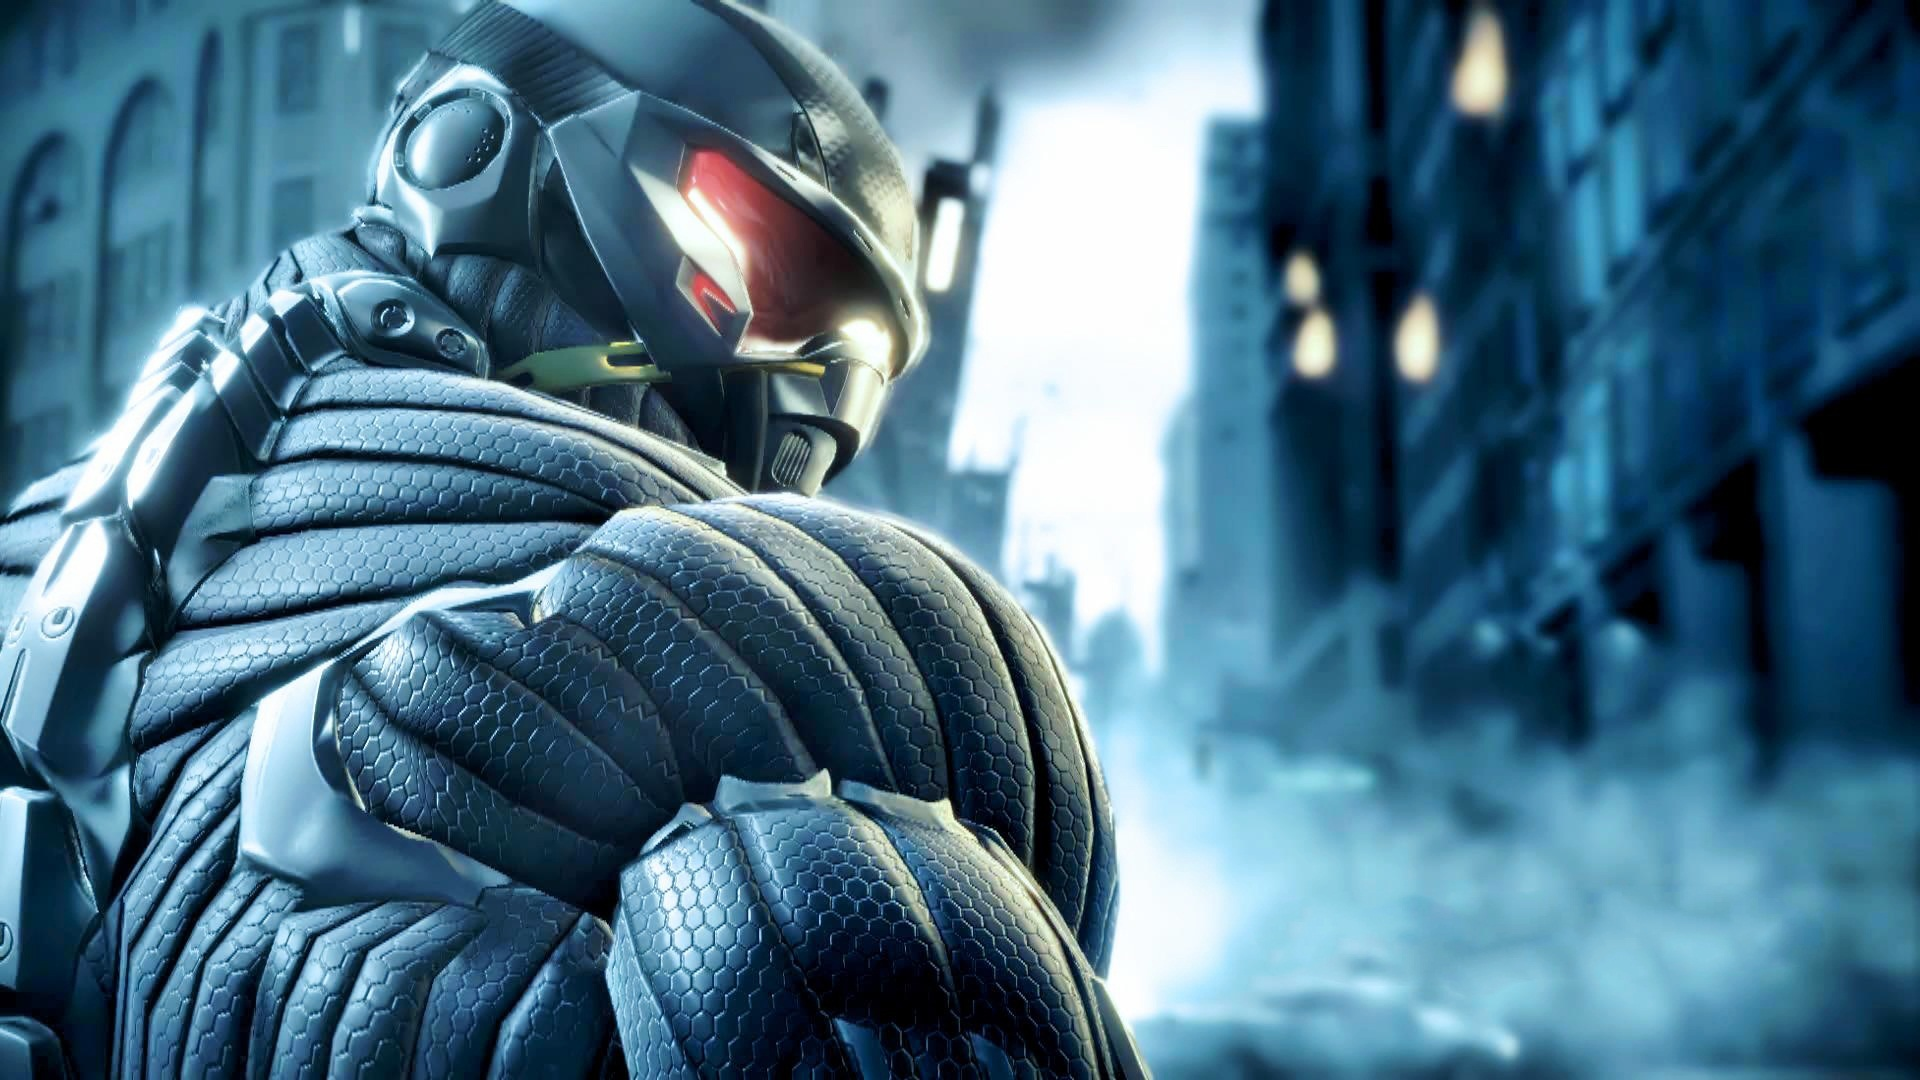 Crysis HD 1080p Wallpapers HD Wallpapers 1920x1080